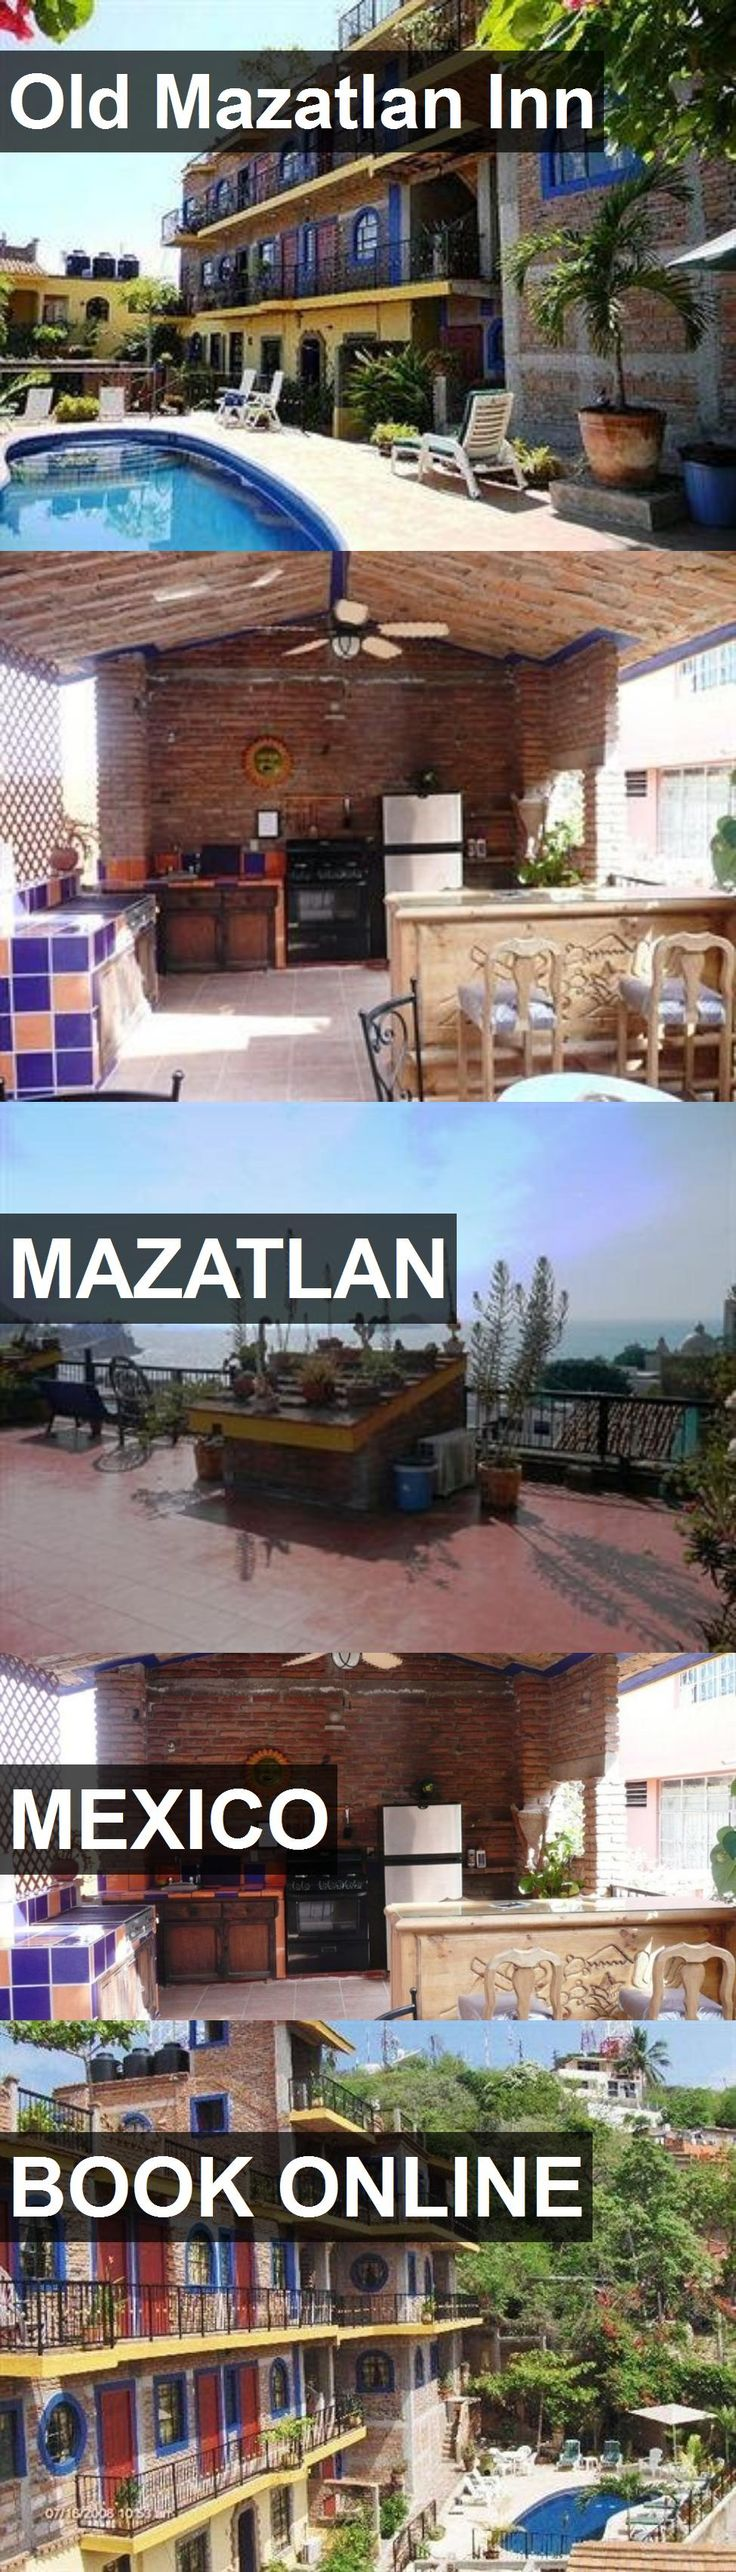 Hotel Old Mazatlan Inn in Mazatlan, Mexico. For more information, photos, reviews and best prices please follow the link. #Mexico #Mazatlan #travel #vacation #hotel